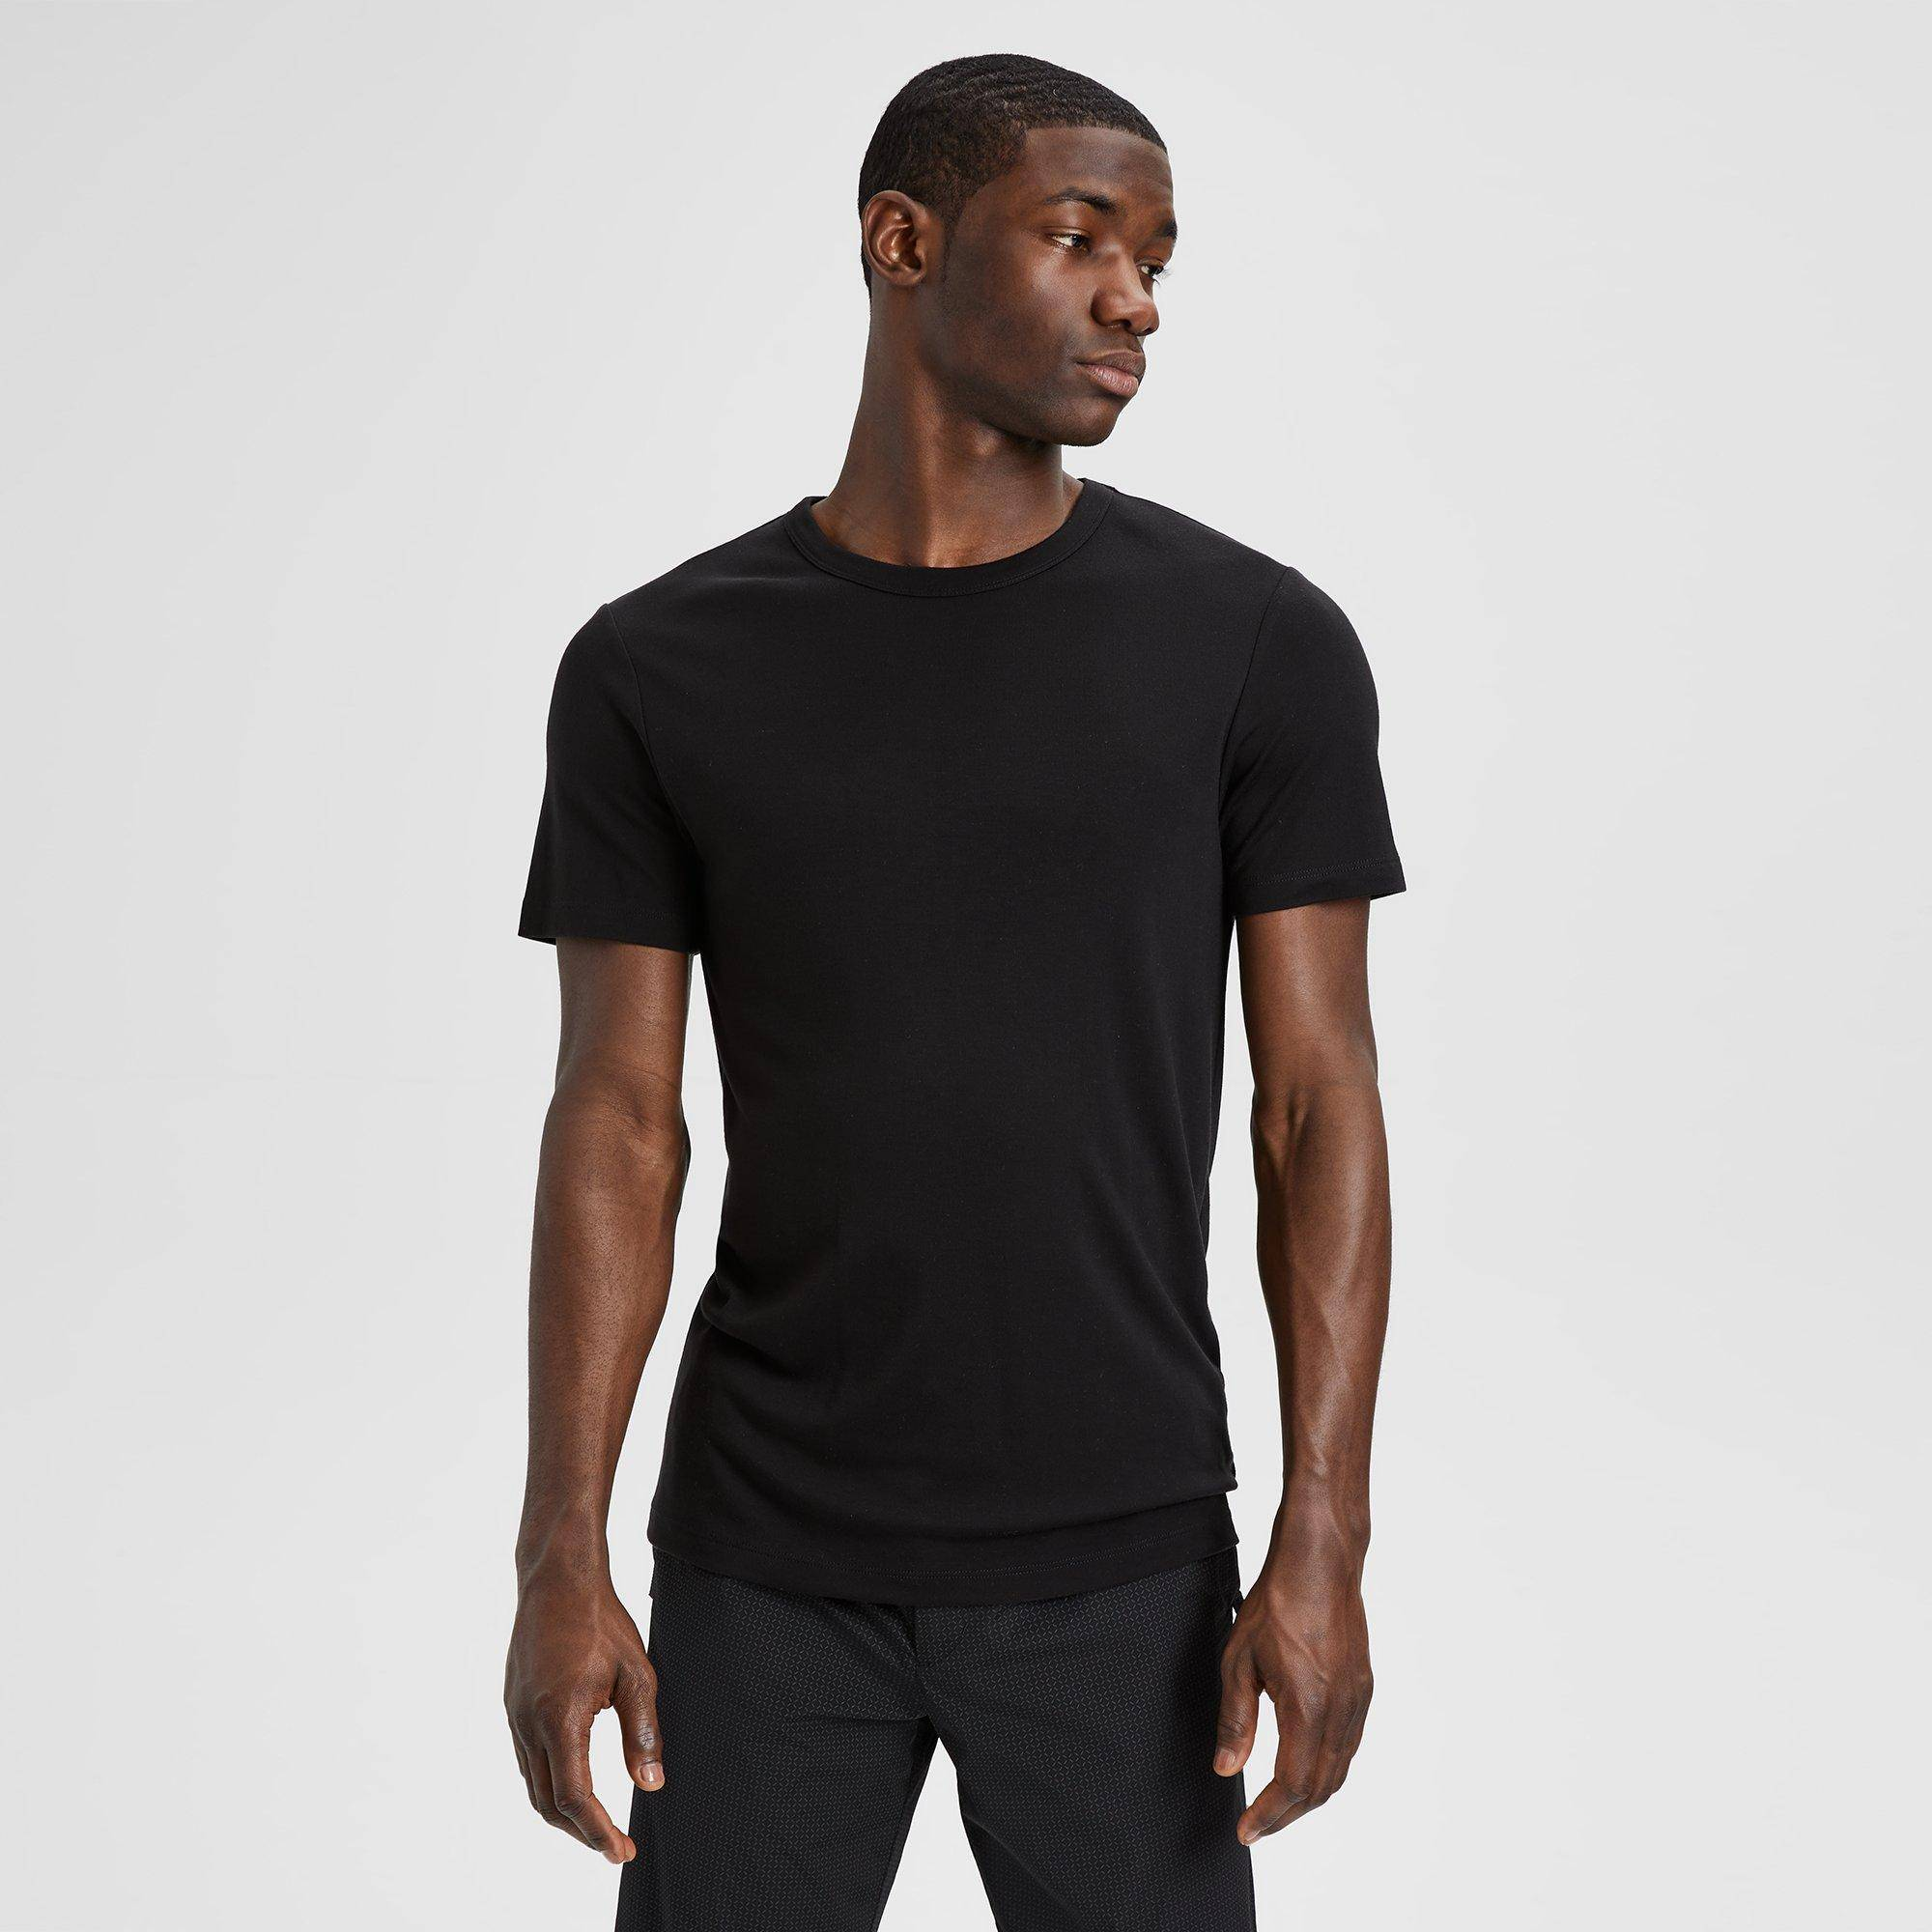 Theory Lyocell Essential Tee  - BLACK - male - Size: Small